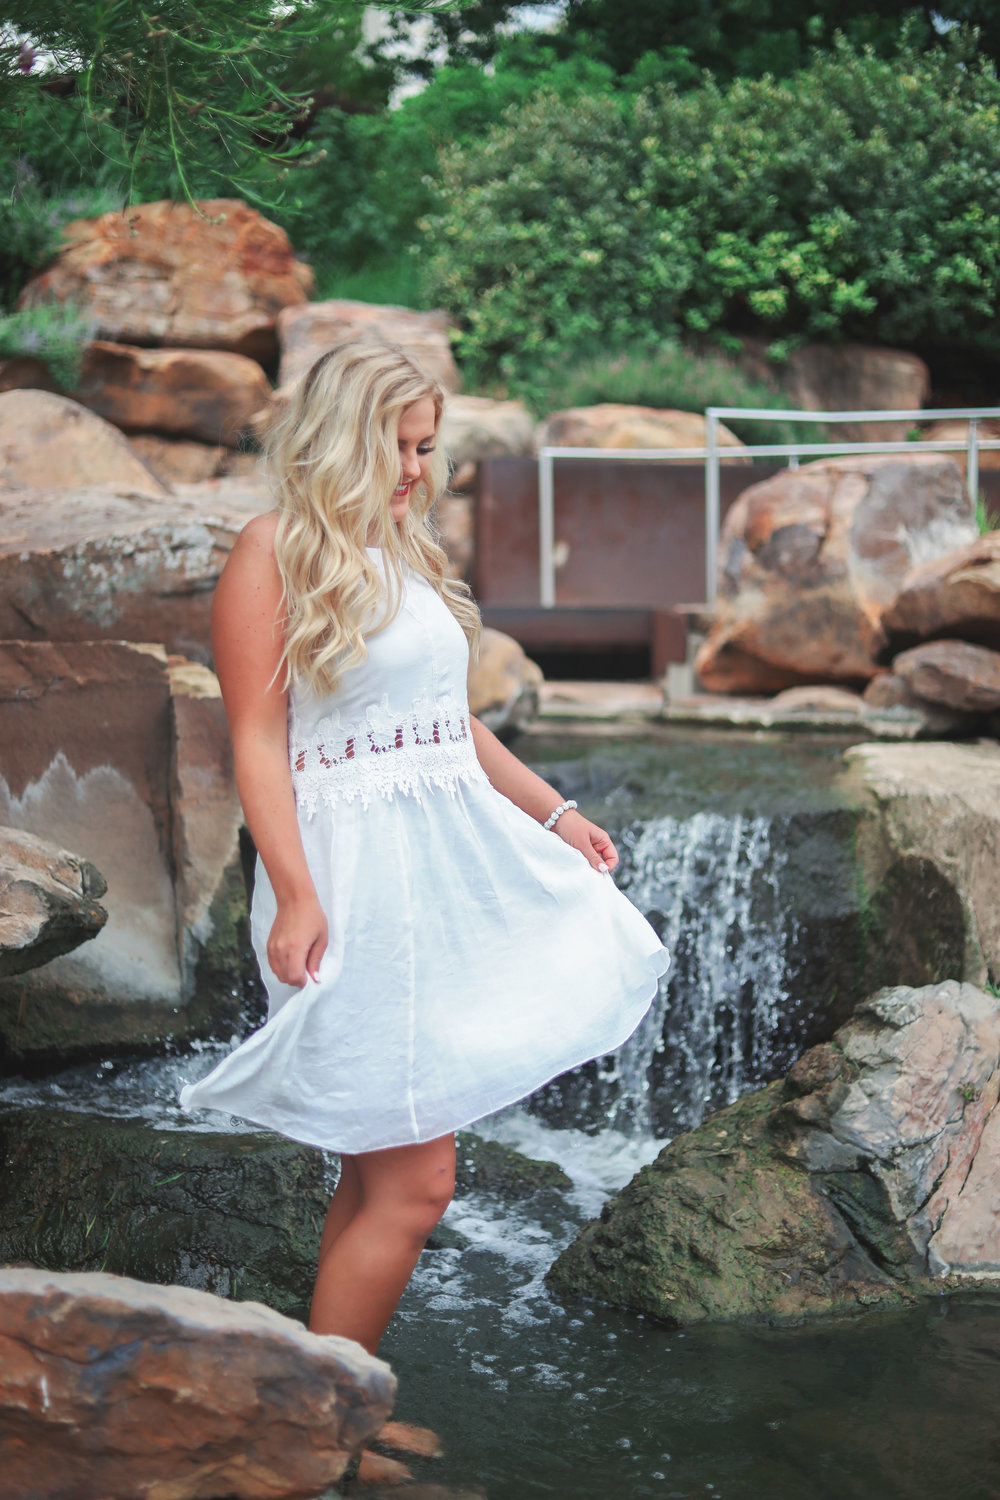 High School Senior girl wearing white dress standing barefoot in a fountain at Myriad Gardens in Oklahoma City.